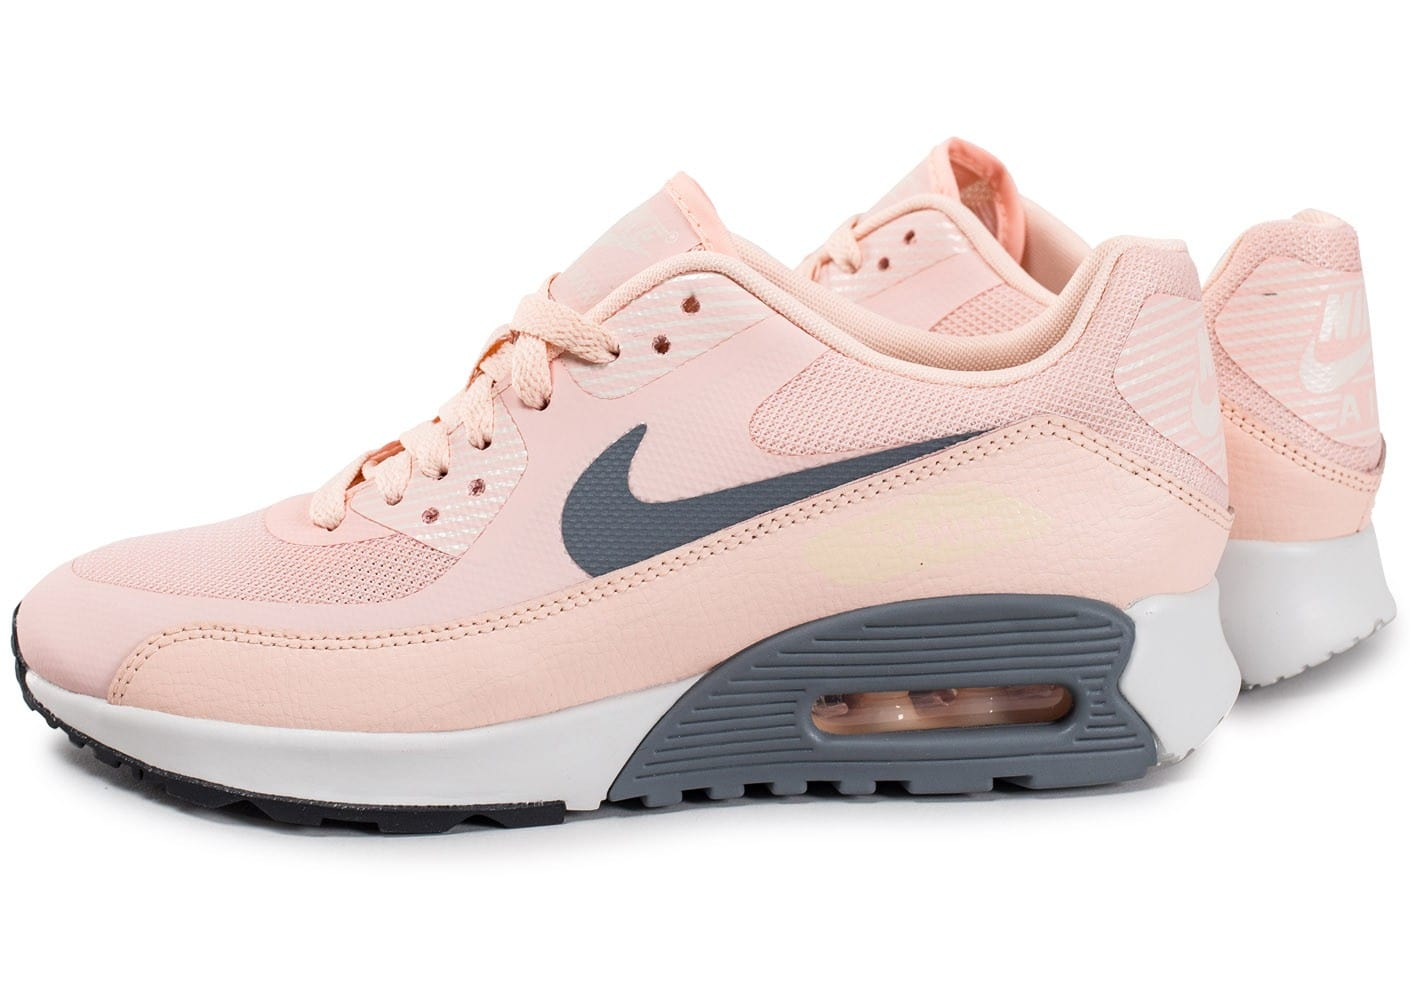 France Pas Cher air max 90 ultra rose Vente en ligne